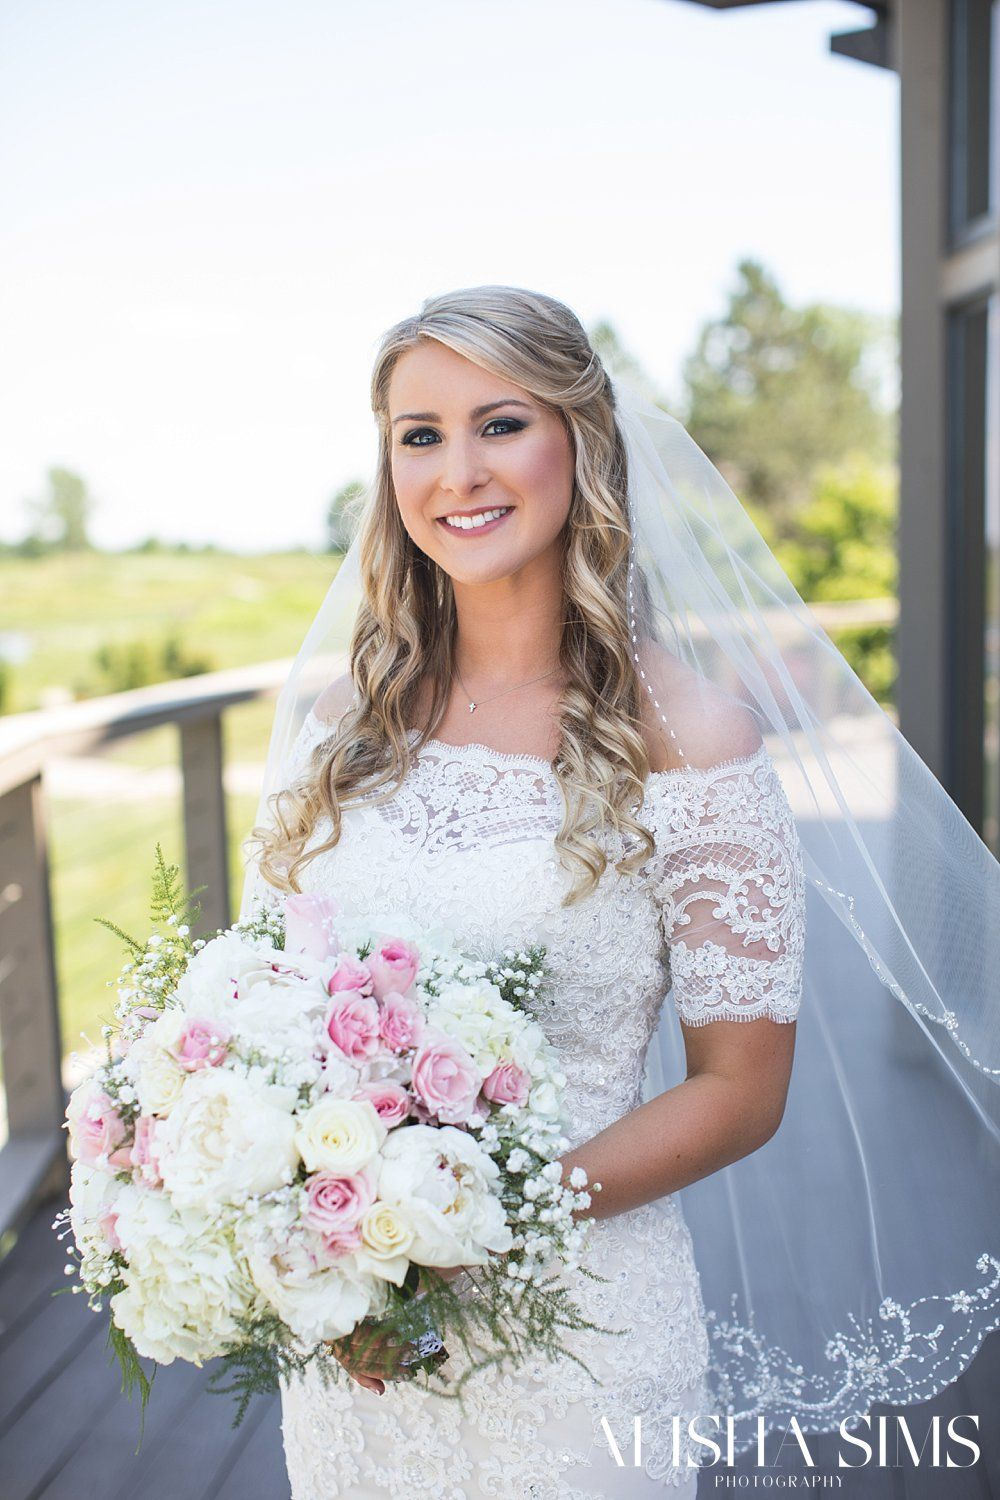 Alisha Sims Is A Wedding Photographer And Portrait Based In The Evansville Indiana Region